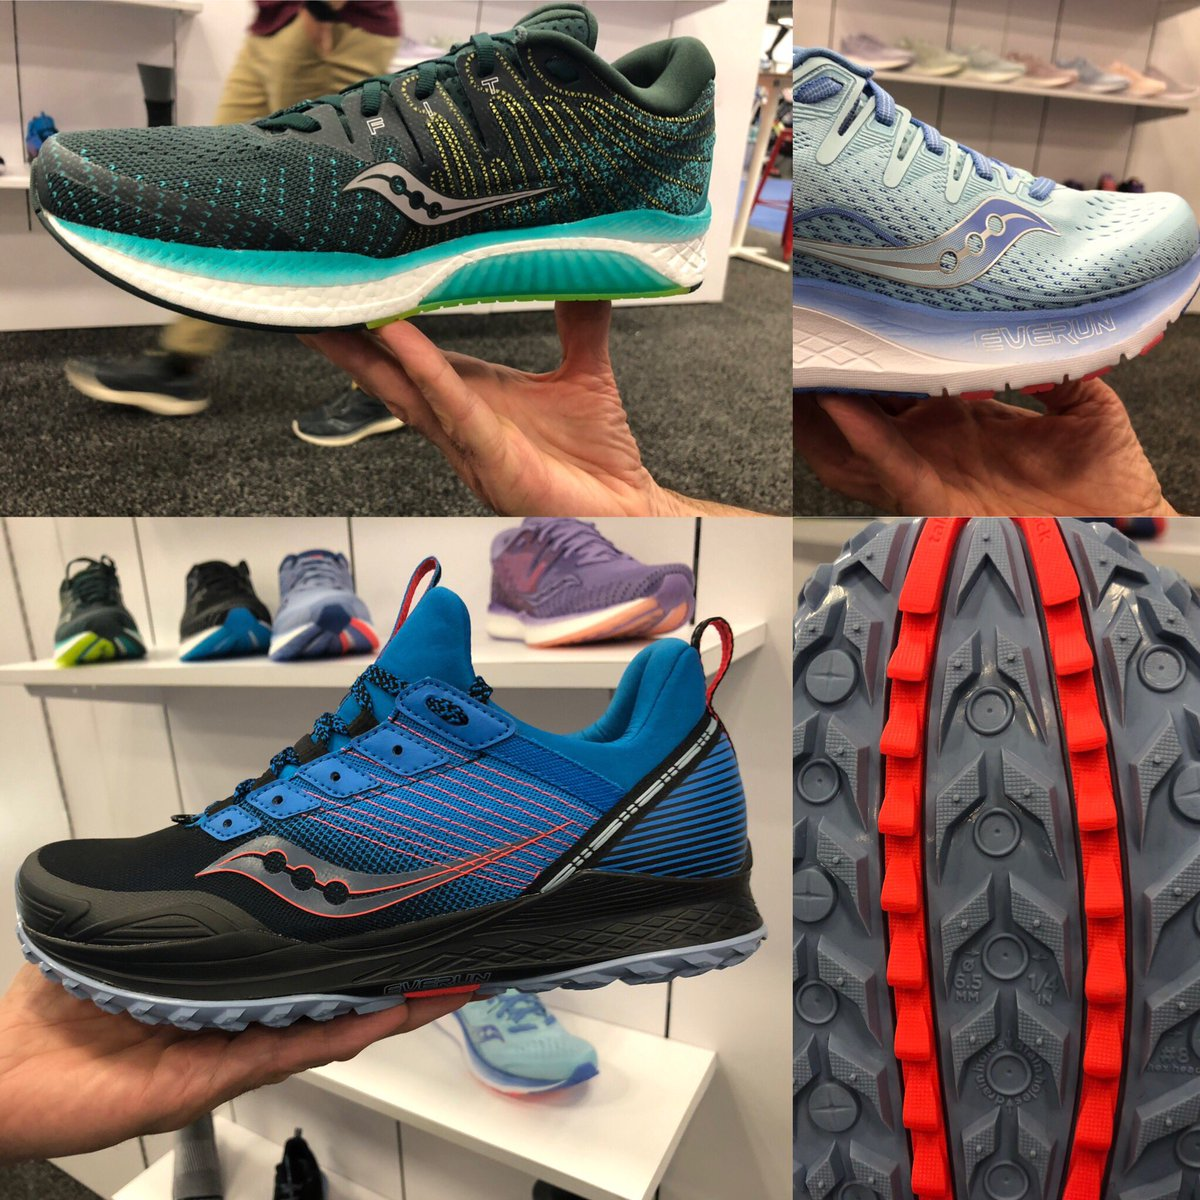 4c83468b31b92 Full previews to follow! Direct Link to article with all the videos   https   www.roadtrailrun.com 2018 11 the-running-eve  …pic.twitter.com srAEFjFf70